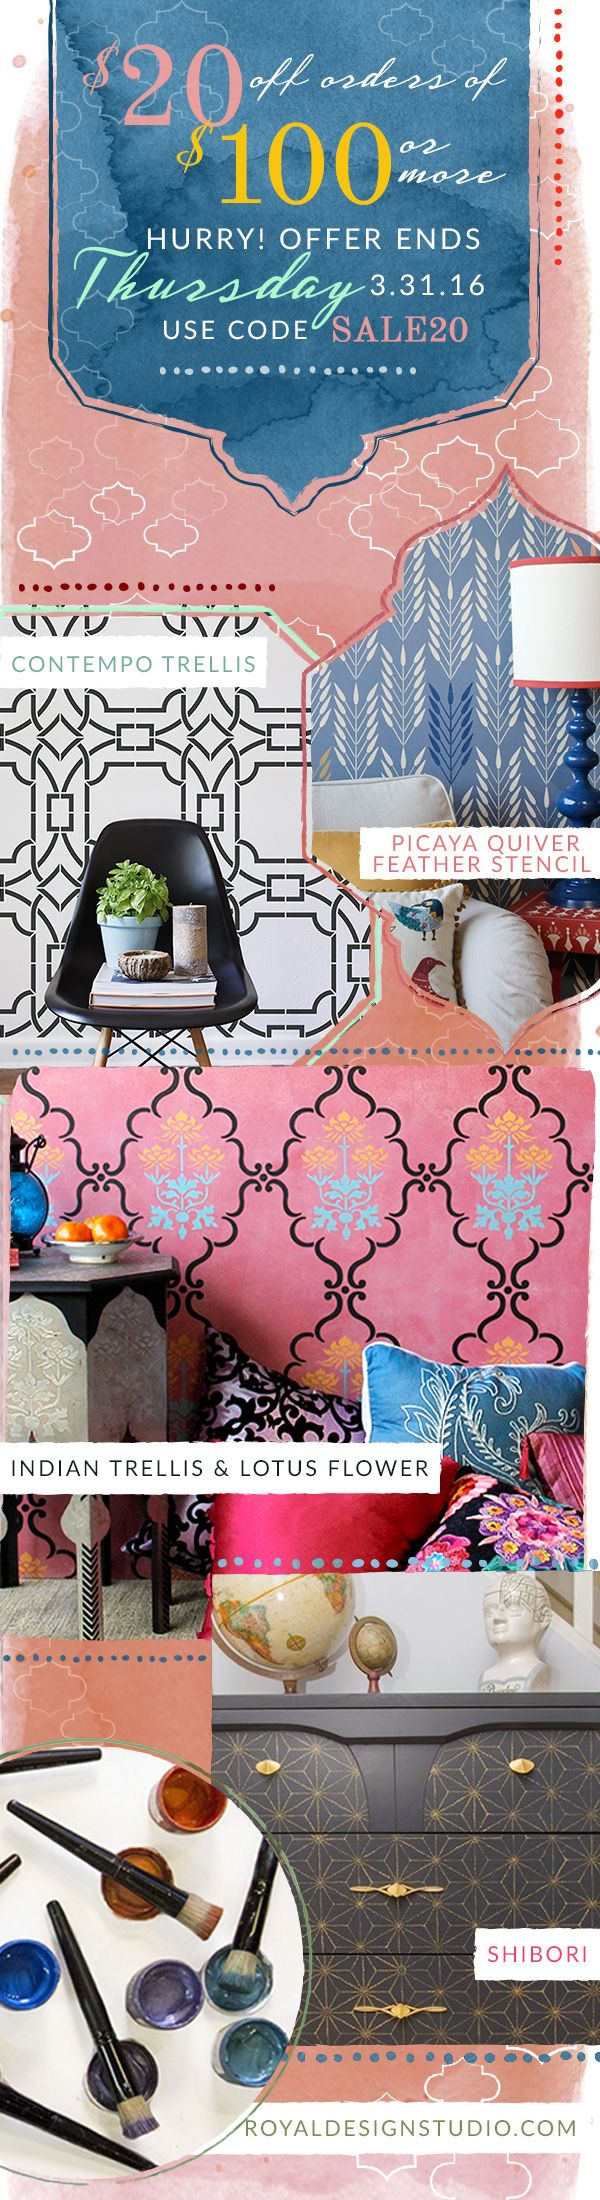 135 best sale stencilsproducts images on pinterest wall paint your walls and furniture with pretty painted pattern wall stencils painted furniture stencils floor stencils ceiling stencils for chic and trendy amipublicfo Images